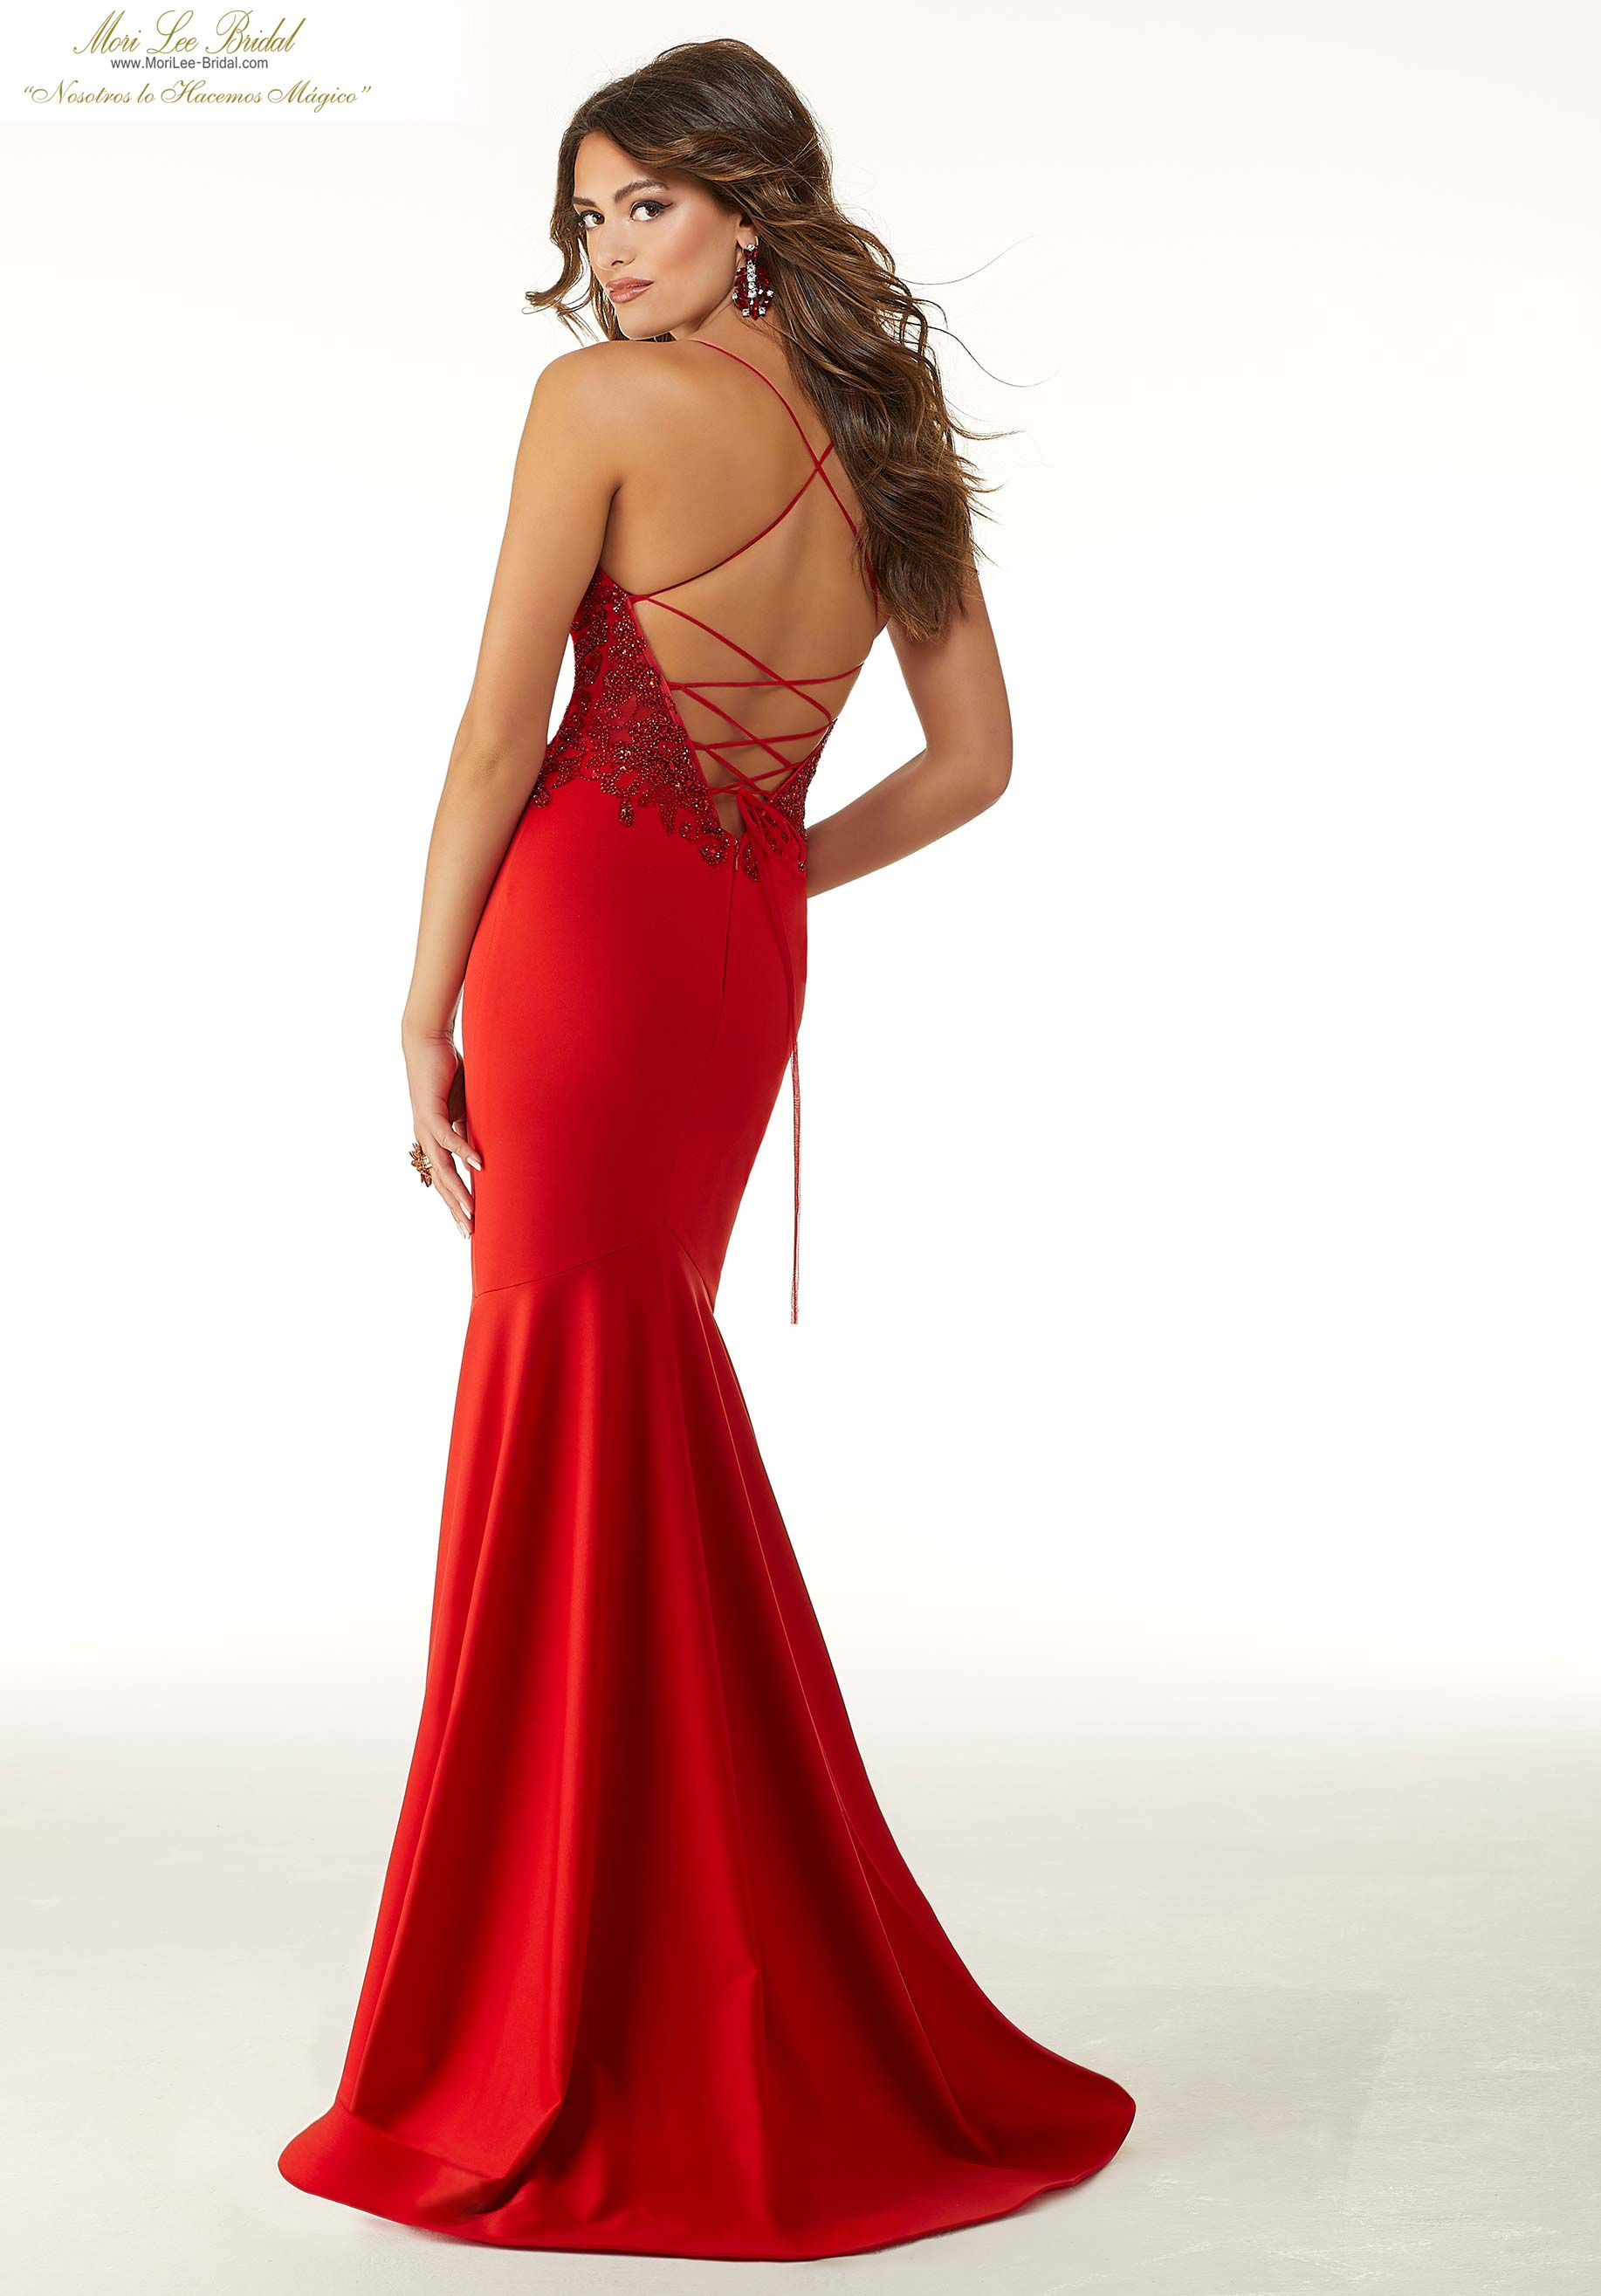 Estilo Iazly In 2020 Beaded Bodice Perfect Prom Dress Mermaid Gown Prom